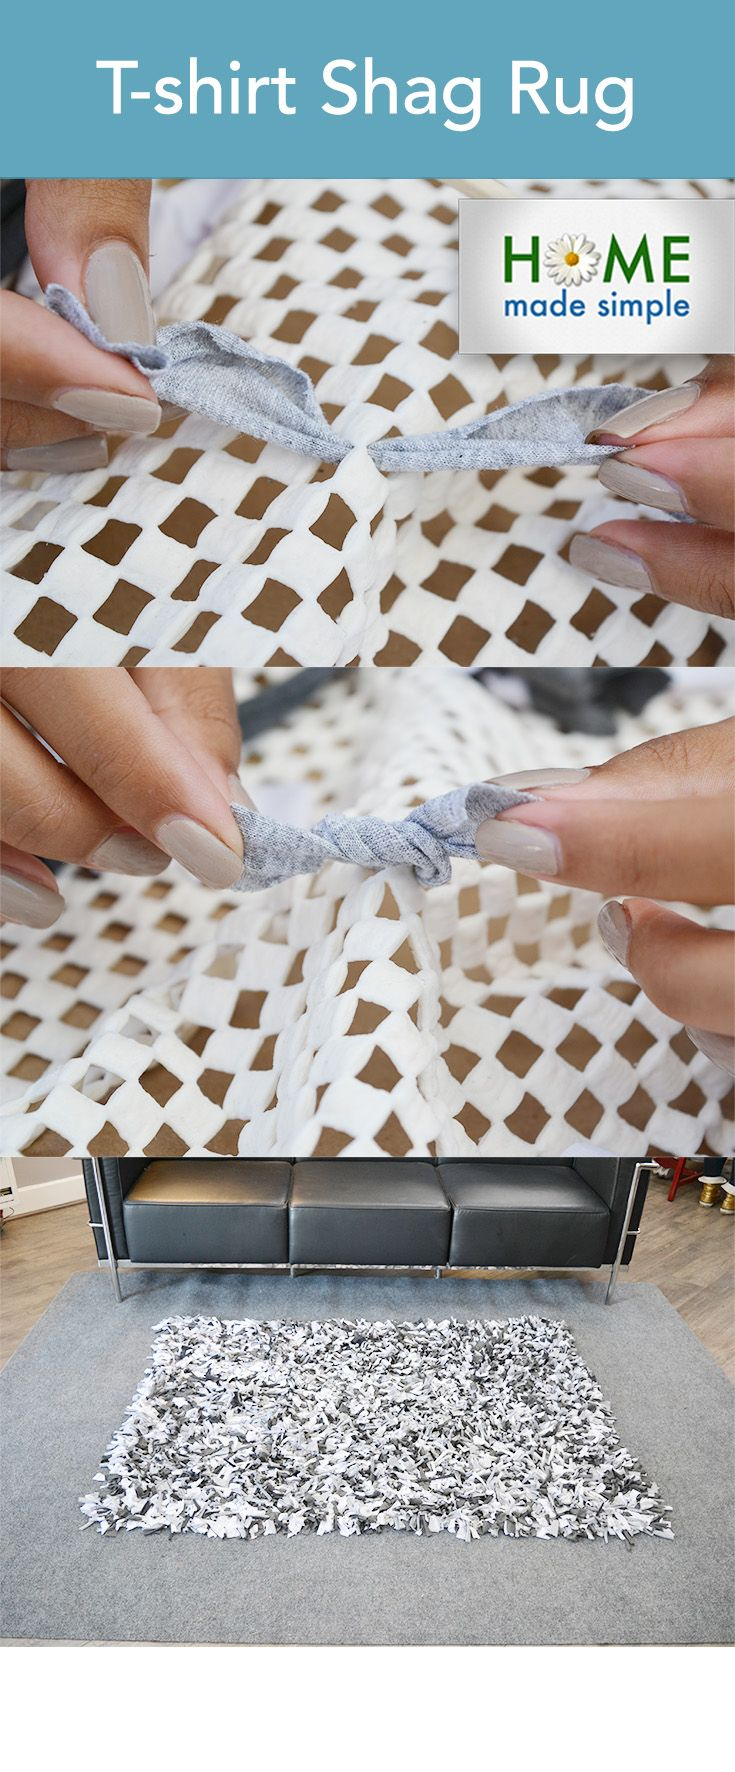 Have some old T-shirts hanging around? Put them to good use with this simple DIY T-shirt rug. Cut up your old shirts and weave them together. It's just 5 simple steps that we've illustrated with pictures. It's the perfect way to use up old shirts and it's a simple craft to do with the whole family.